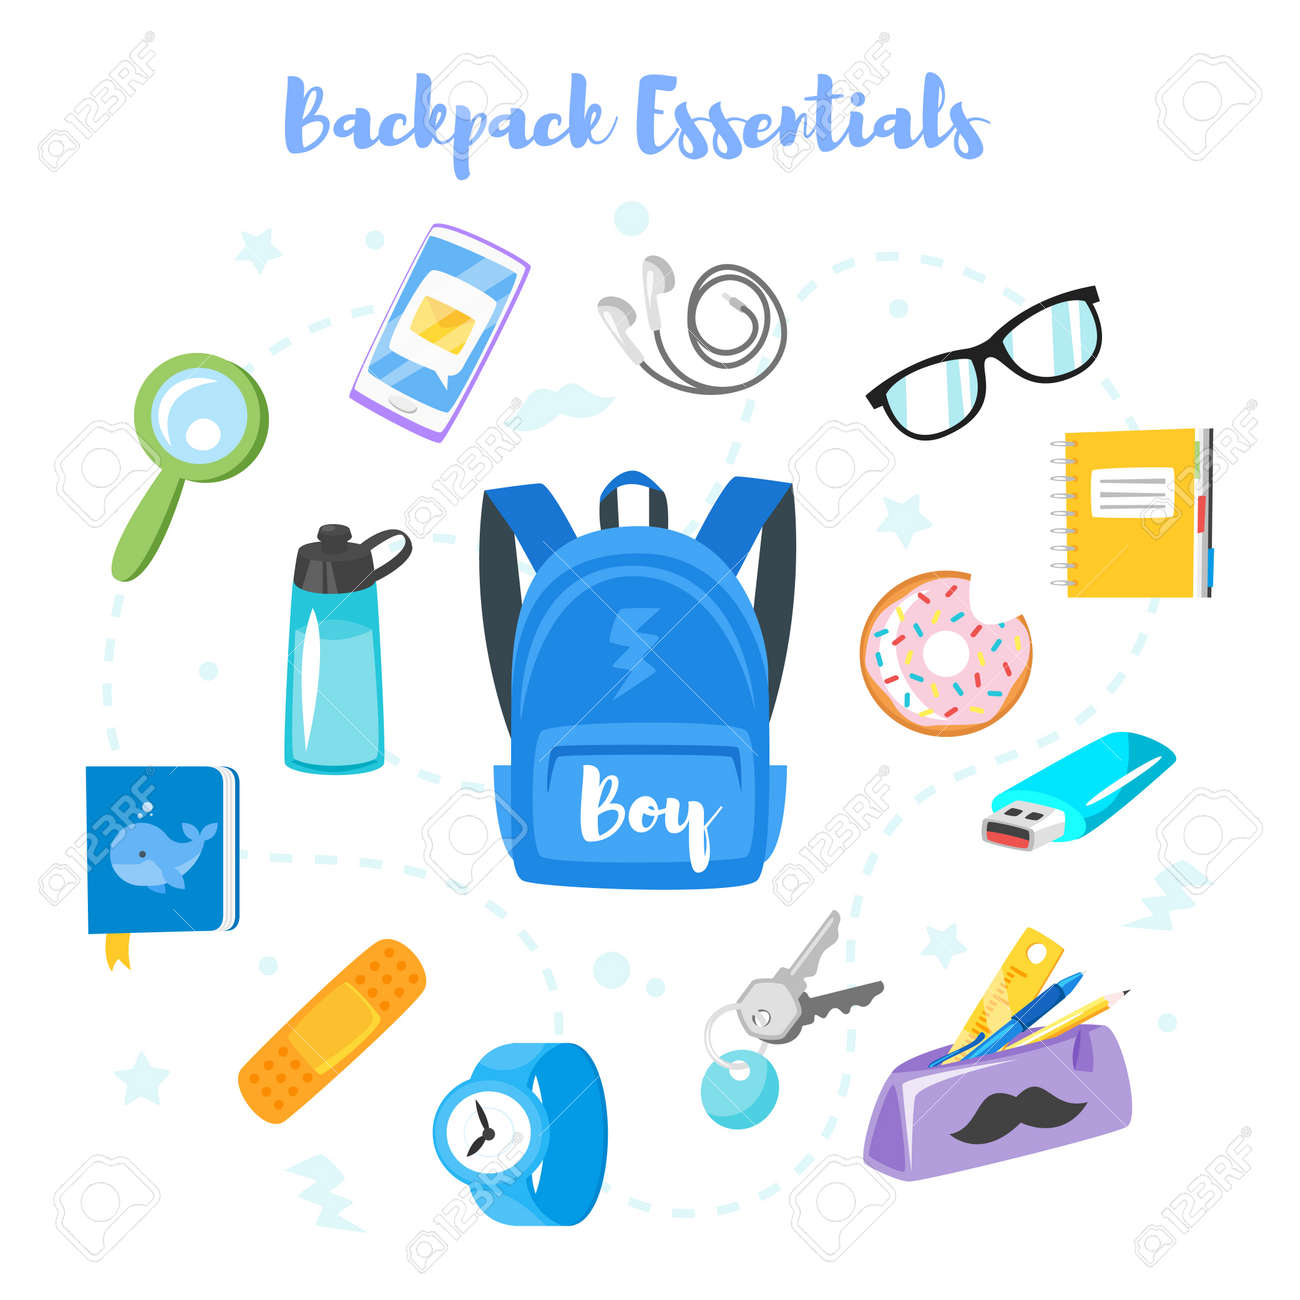 Vector cartoon style backpack essentials set for school boy. Isolated on white background. - 85129045